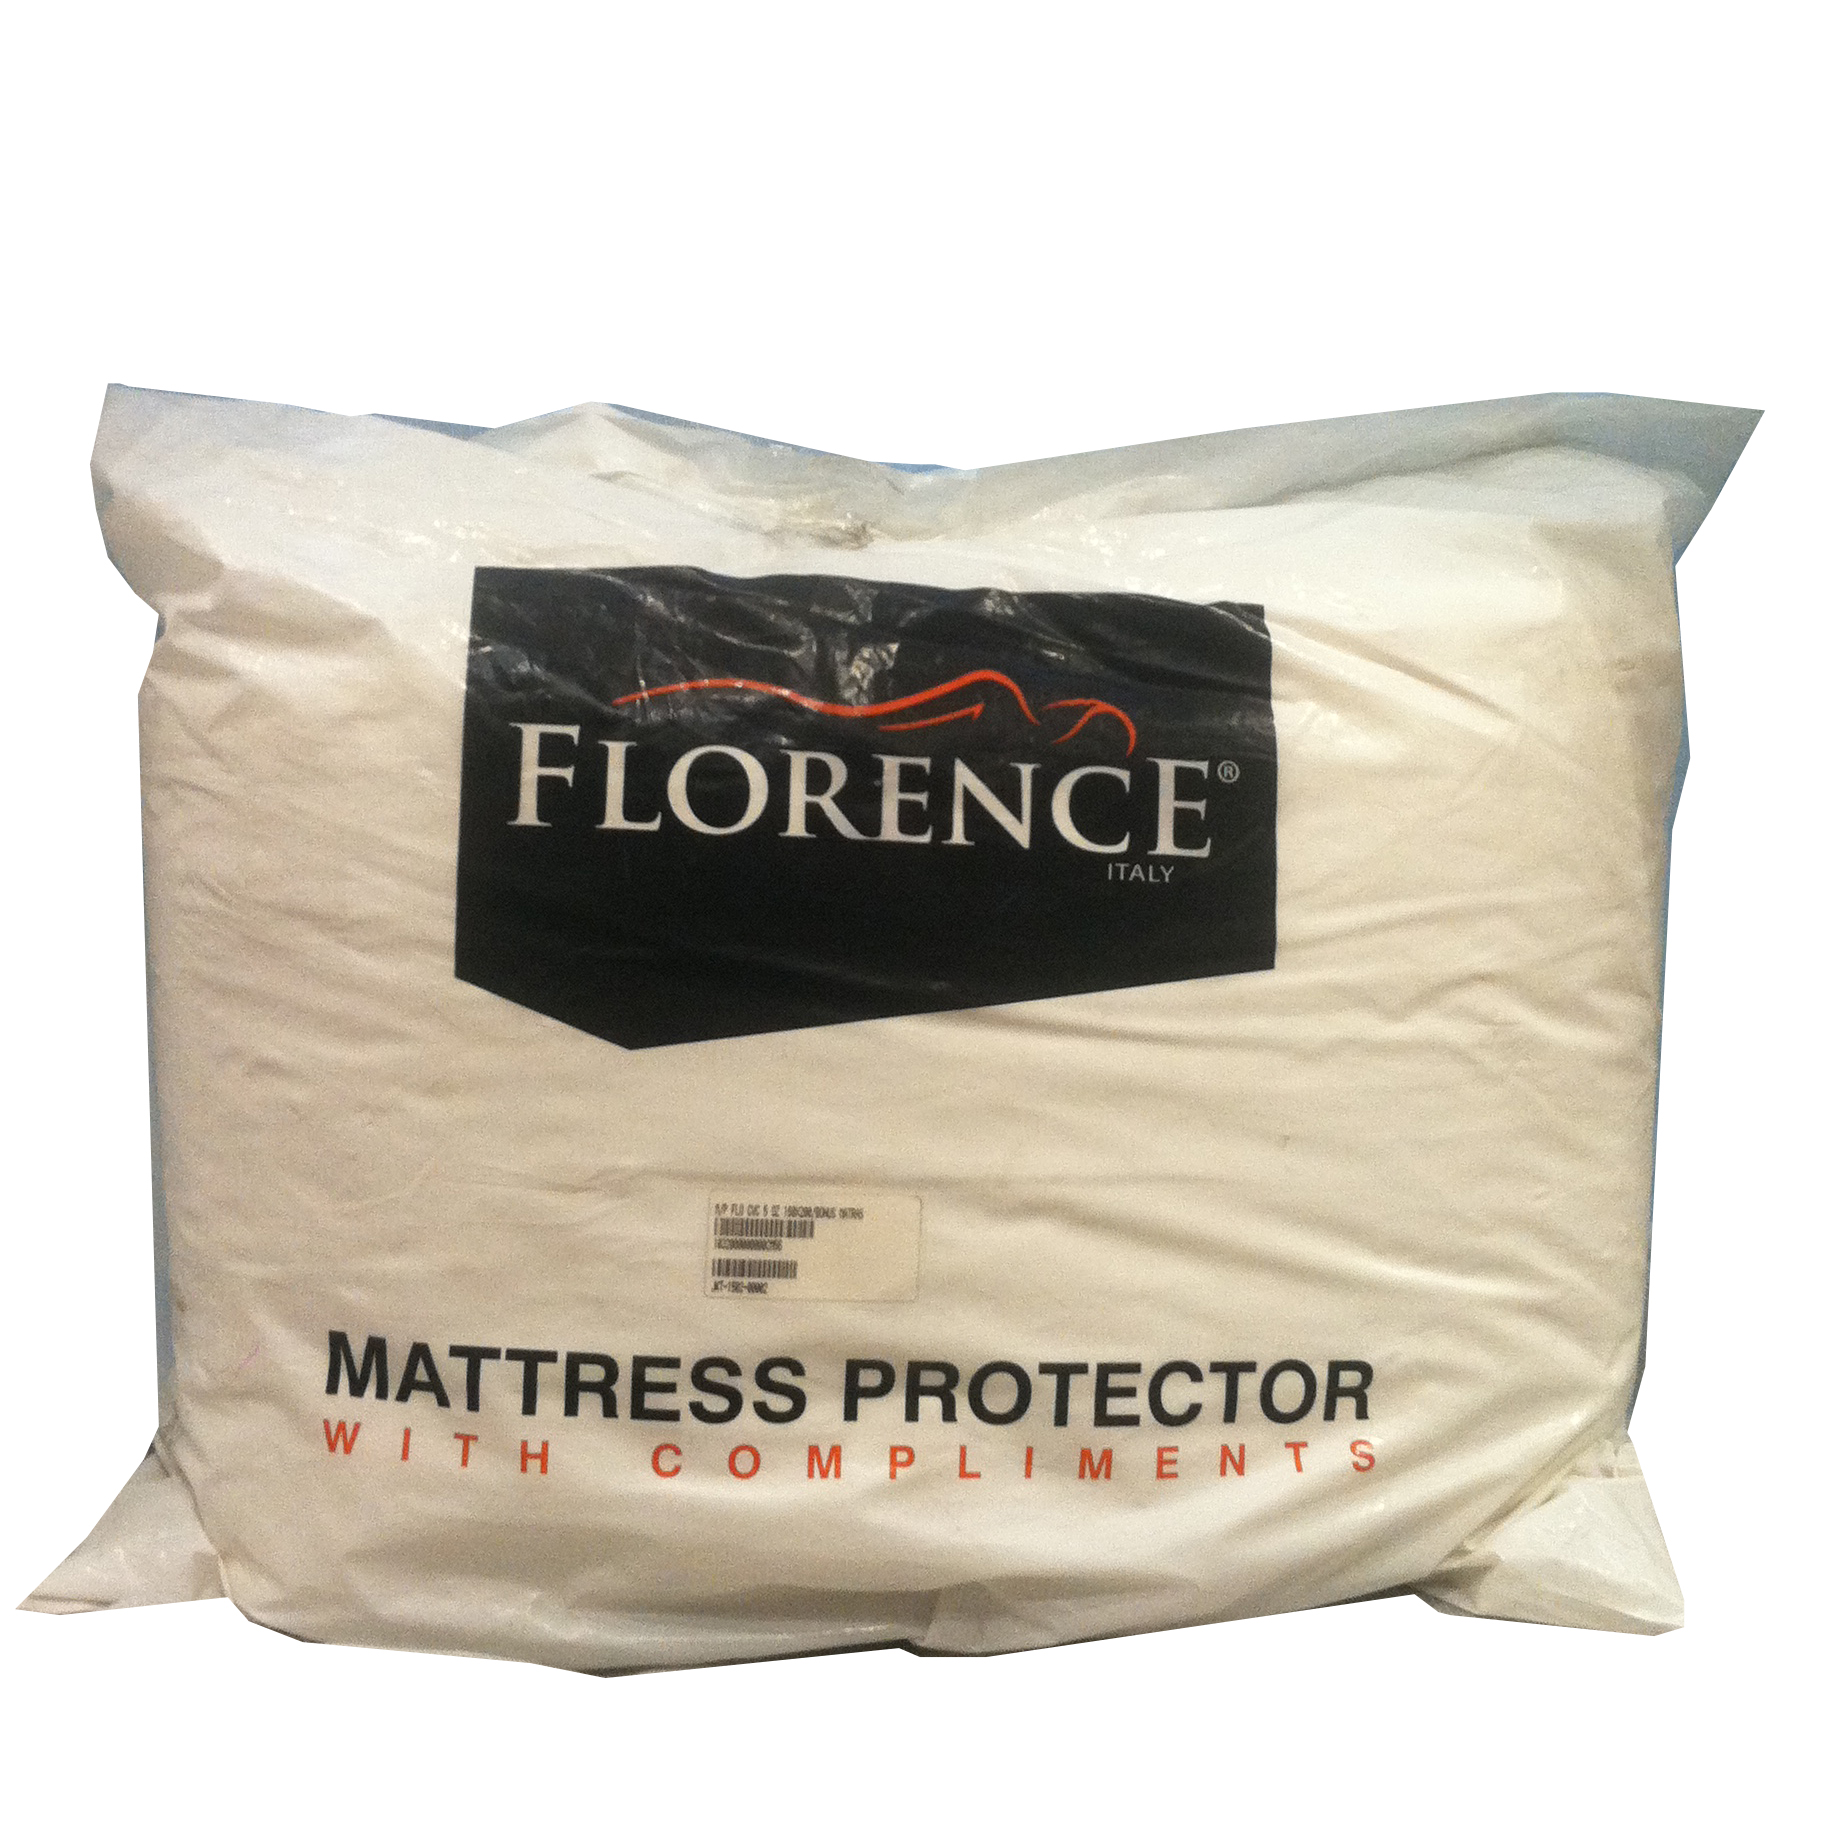 Mattress Protector Florence Uk 120x200 Elevenia Finiland Kasur Spring Bed Galaxy White Pillow Top Bonnel 160x200cm Only